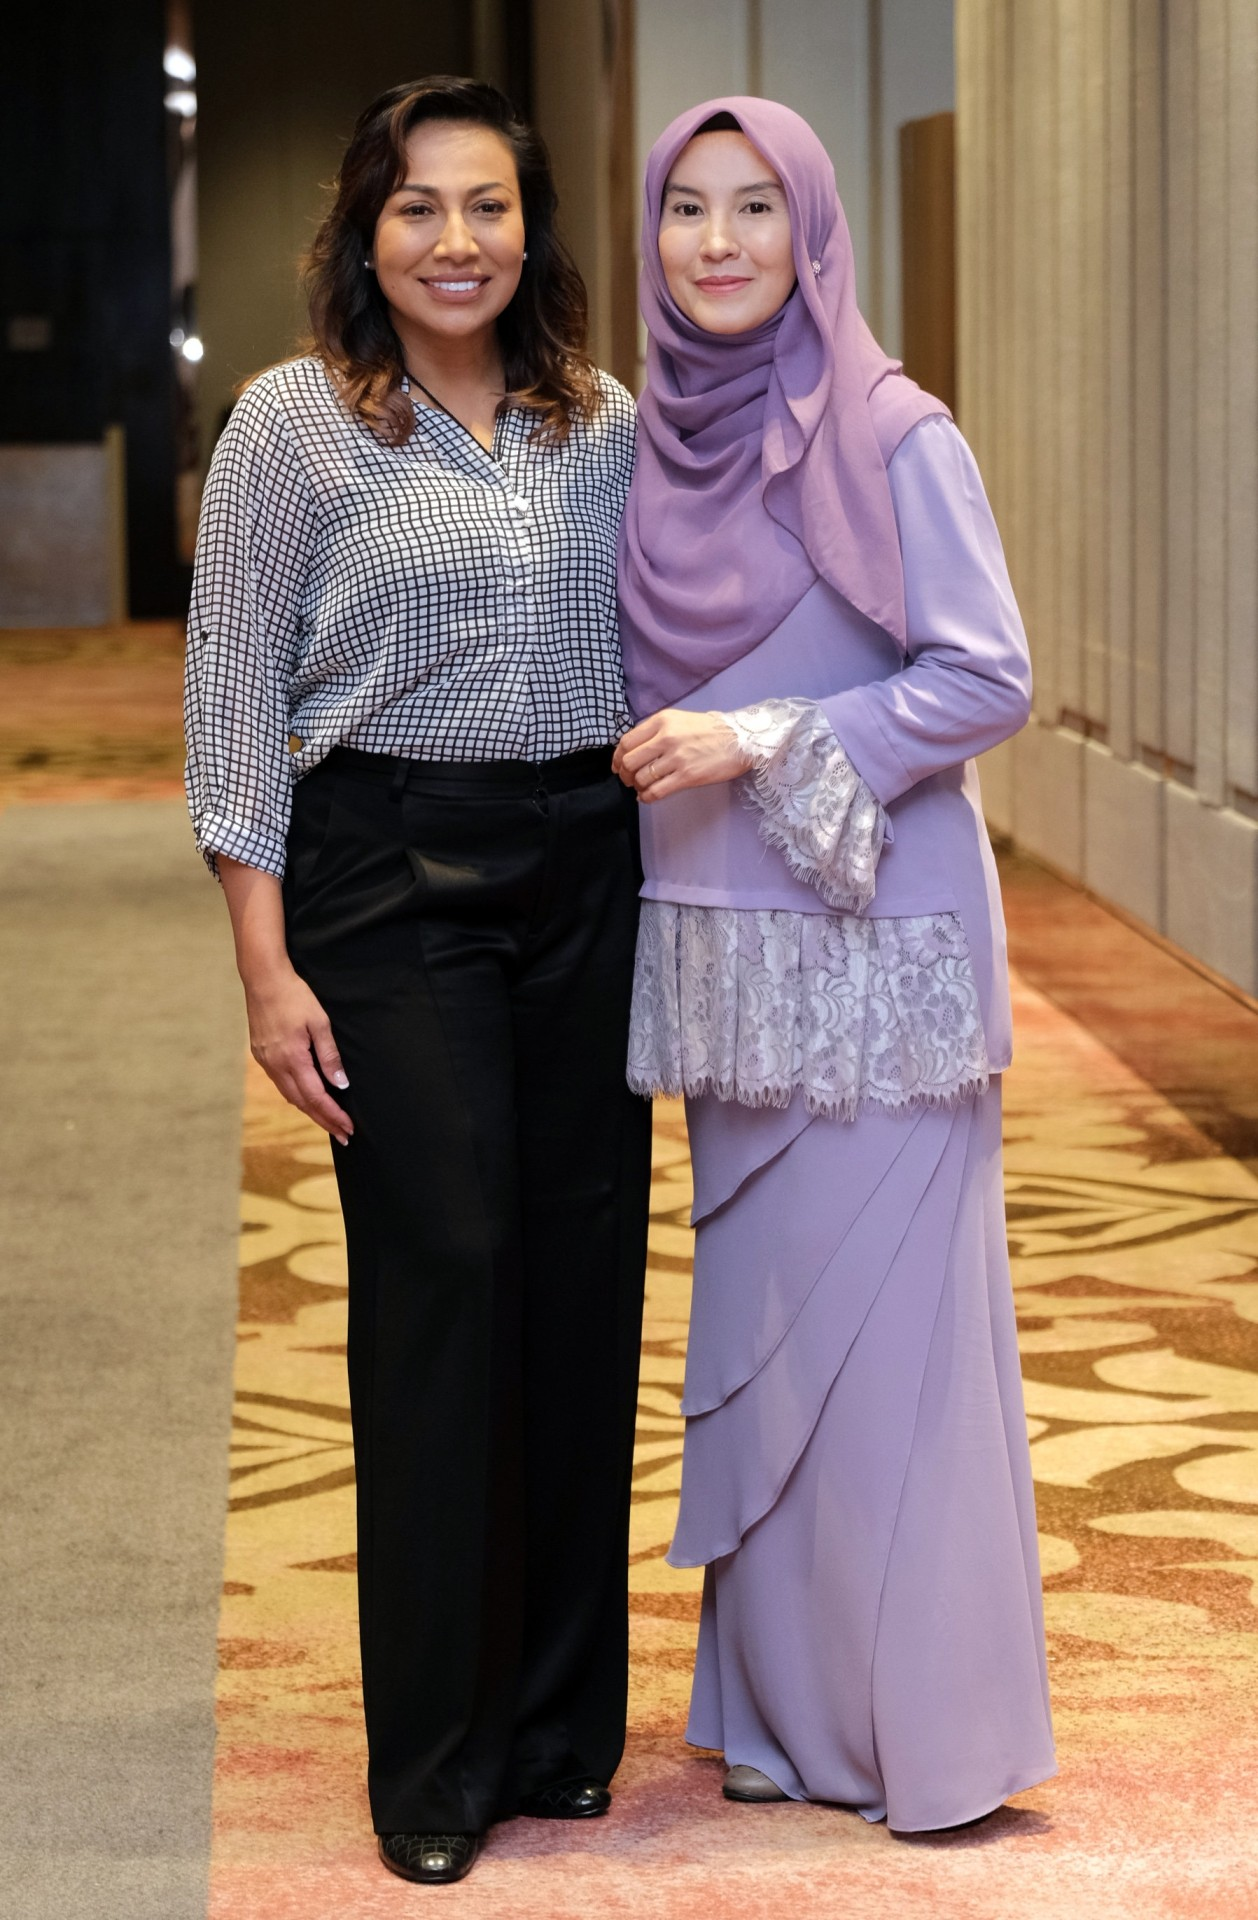 Ning Baizura (left) as Datin Paduka Marina Mahathir and Lisdawati as Nurul Izzah.